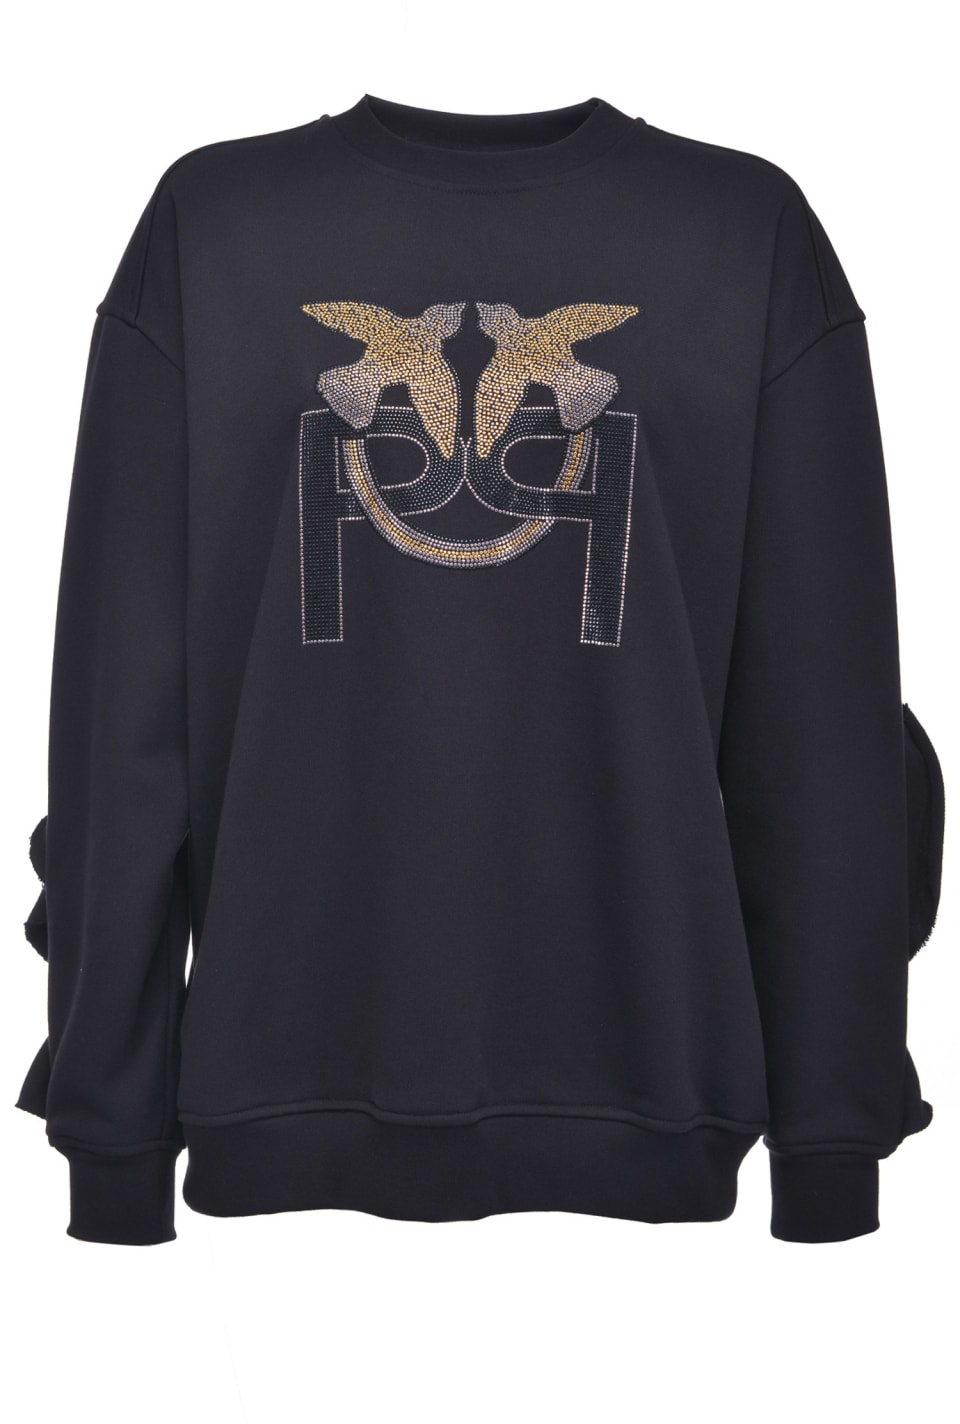 Oversized Monogram sweatshirt - Pinko